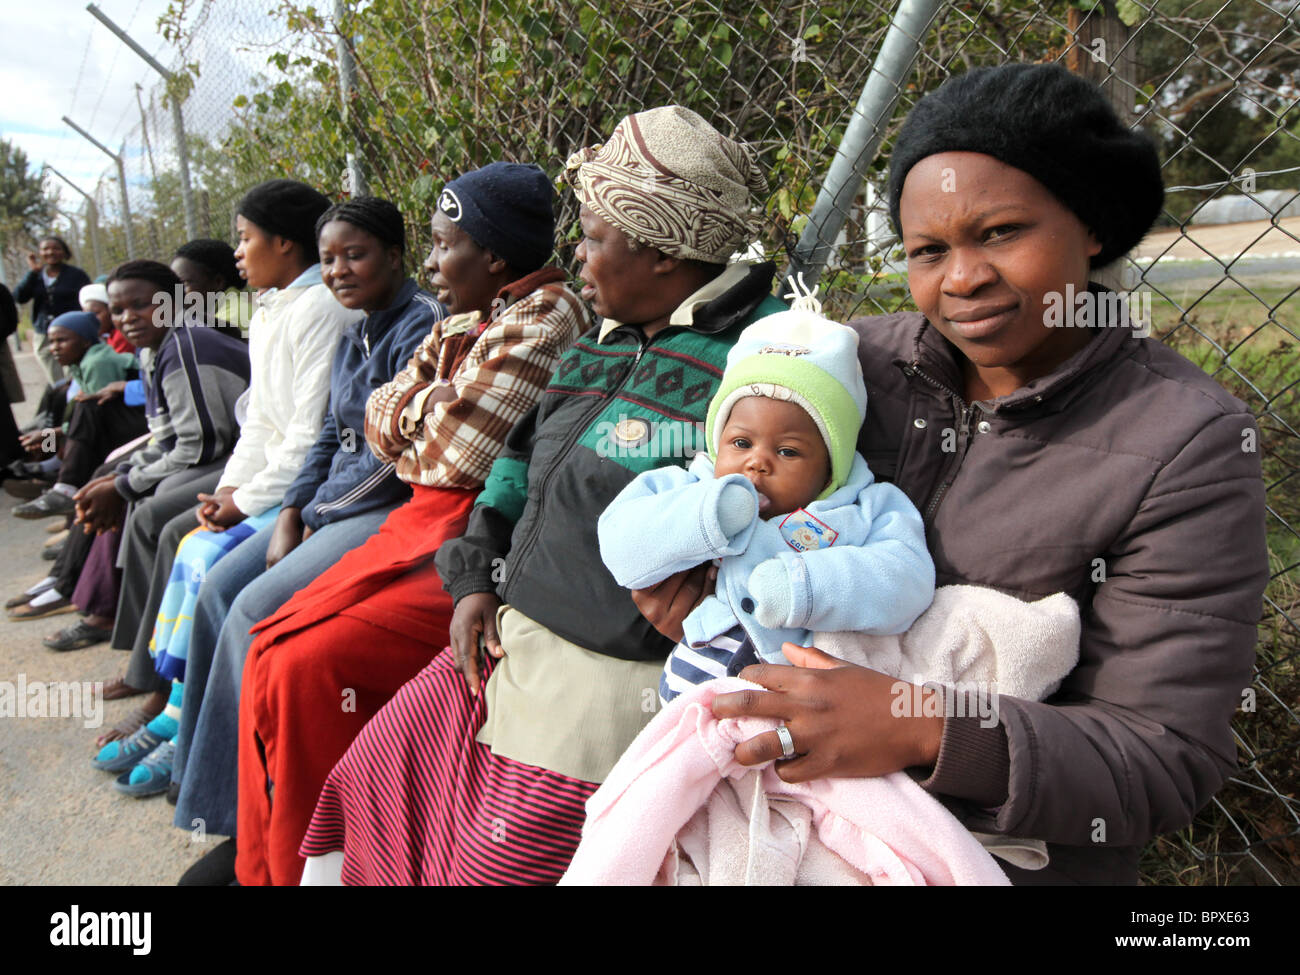 zimbabwean refugees in south africa Africa check asked south africa's department of home affairs and the zimbabwe consulate in pretoria for data on the numbers of people crossing the border from zimbabwe to south africa before and after the elections and the number of documented and undocumented zimbabweans living in south africa.